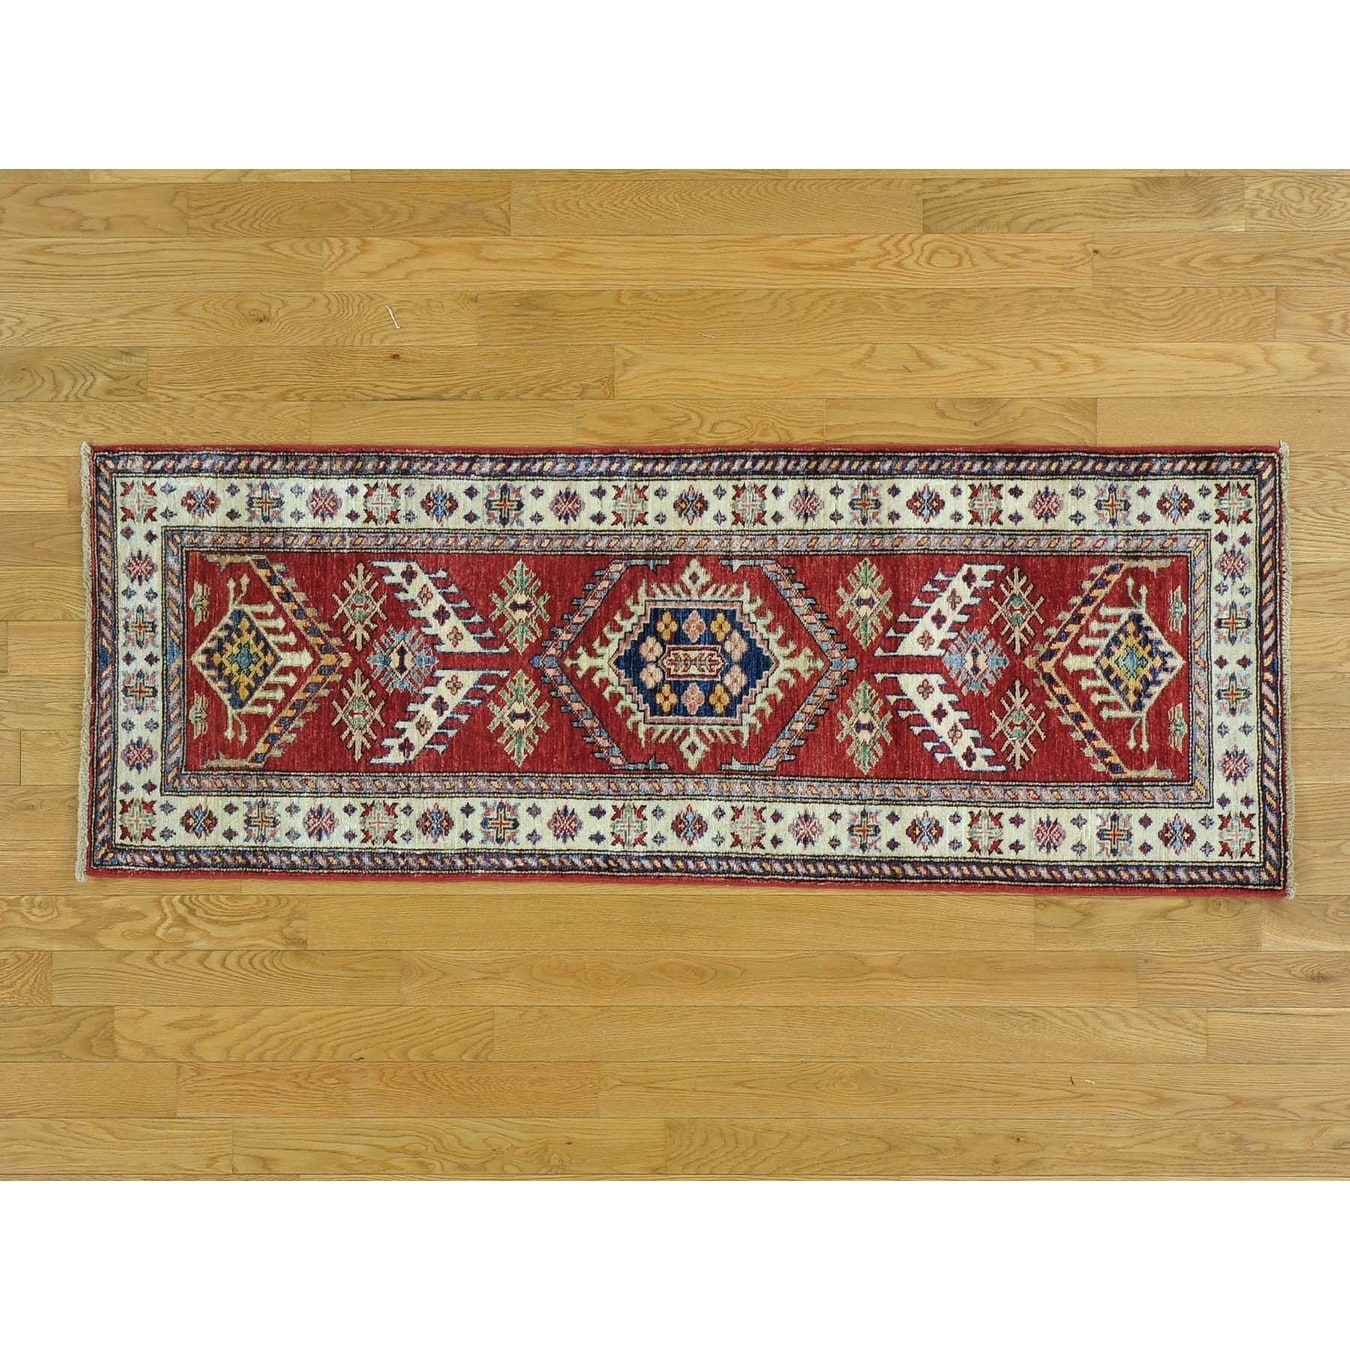 Hand Knotted Red Kazak with Wool Oriental Rug - 22 x 510